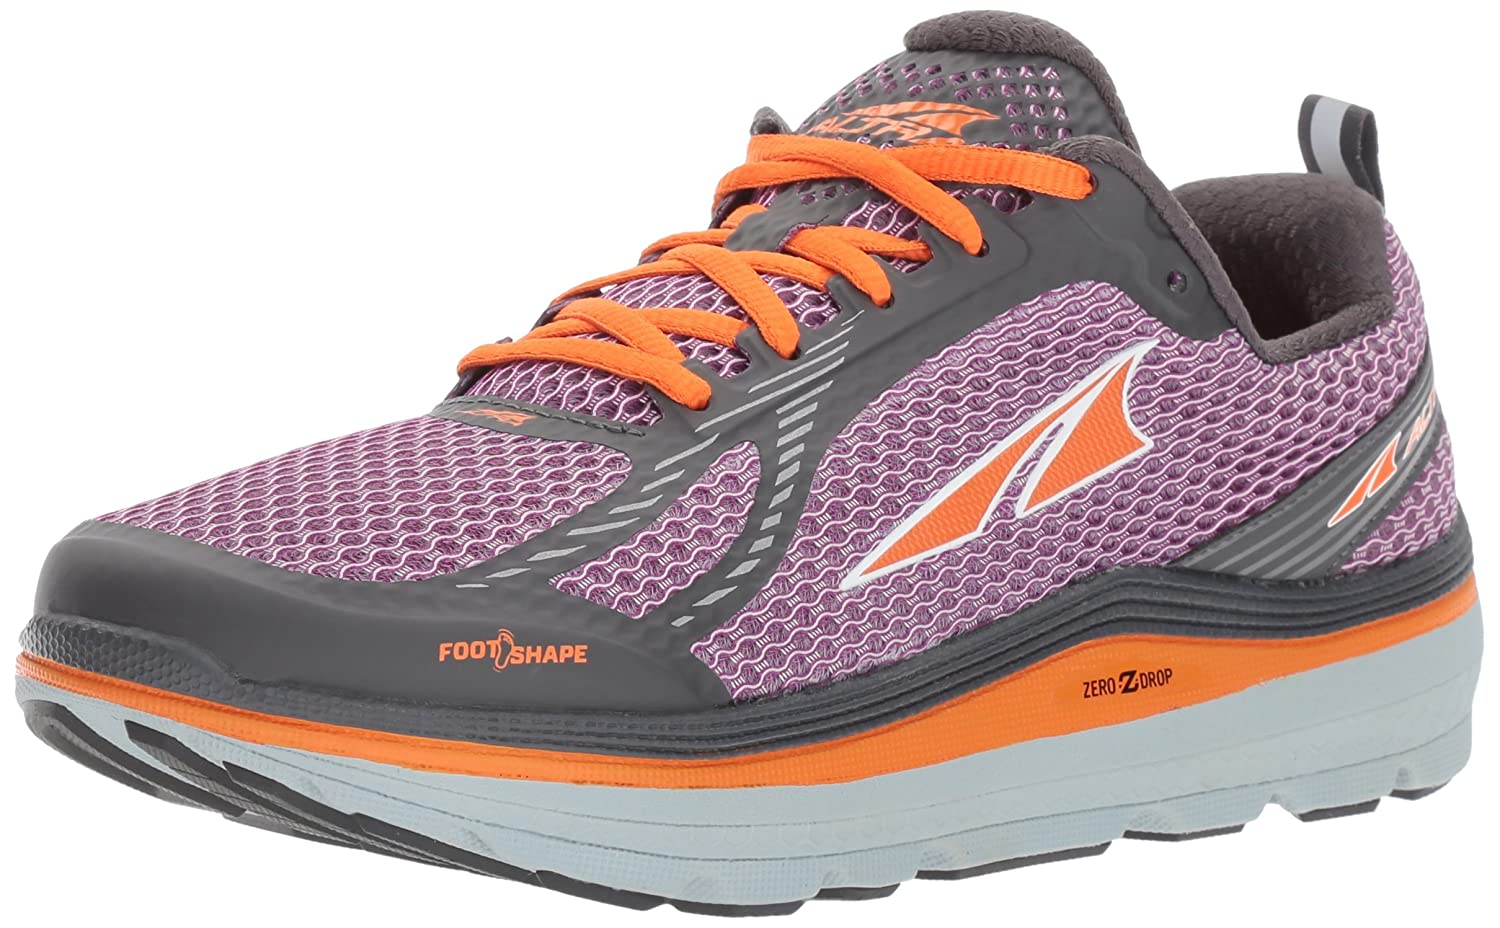 Altra Women's Paradigm 3 B01MY0QHU8 7.5 B(M) US|Purple/Orange